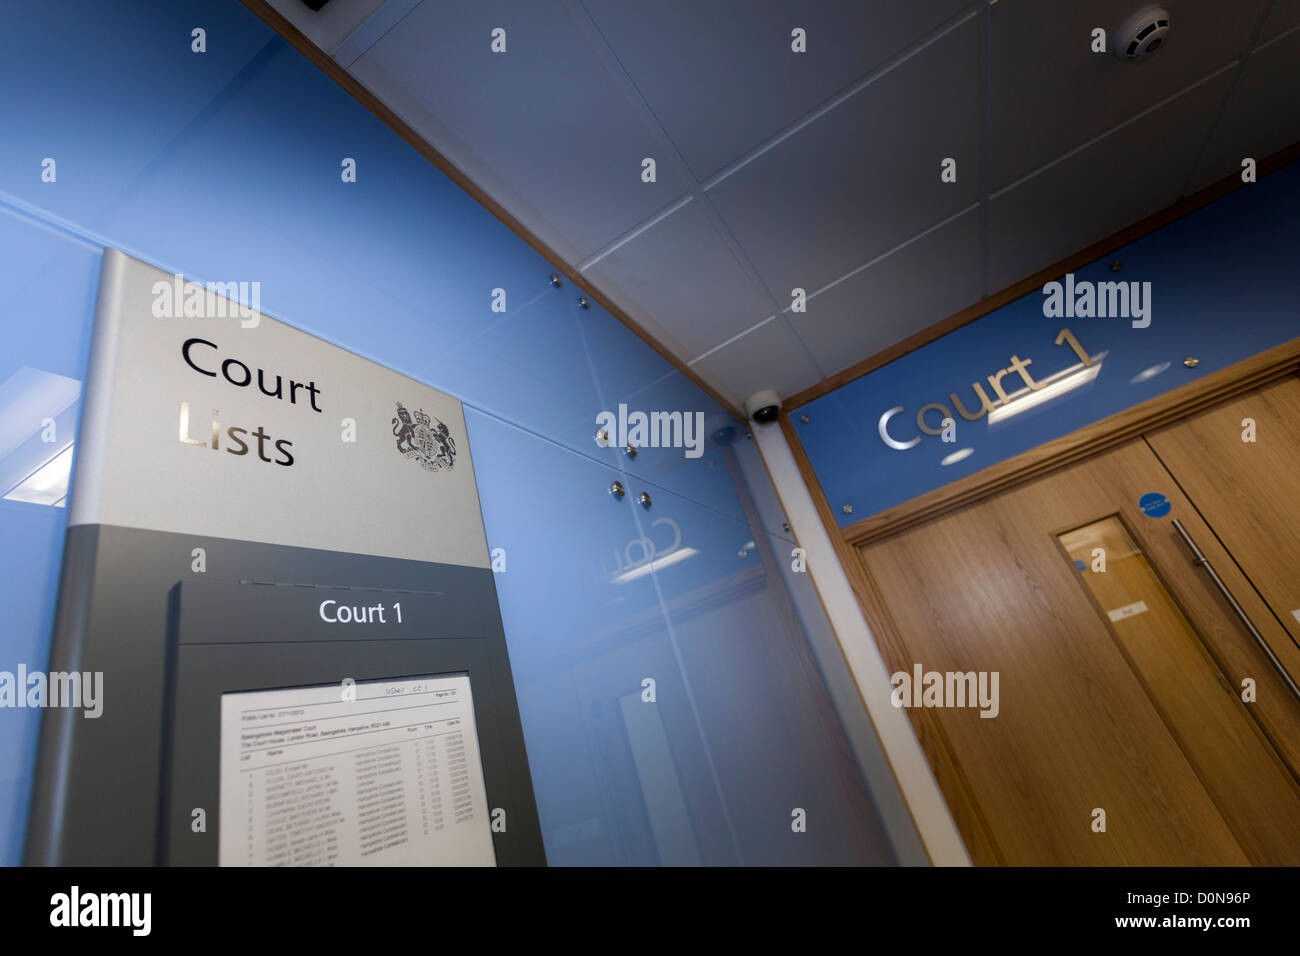 Court list notice board outside Court Number One at Basingstoke Law Courts. - Stock Image